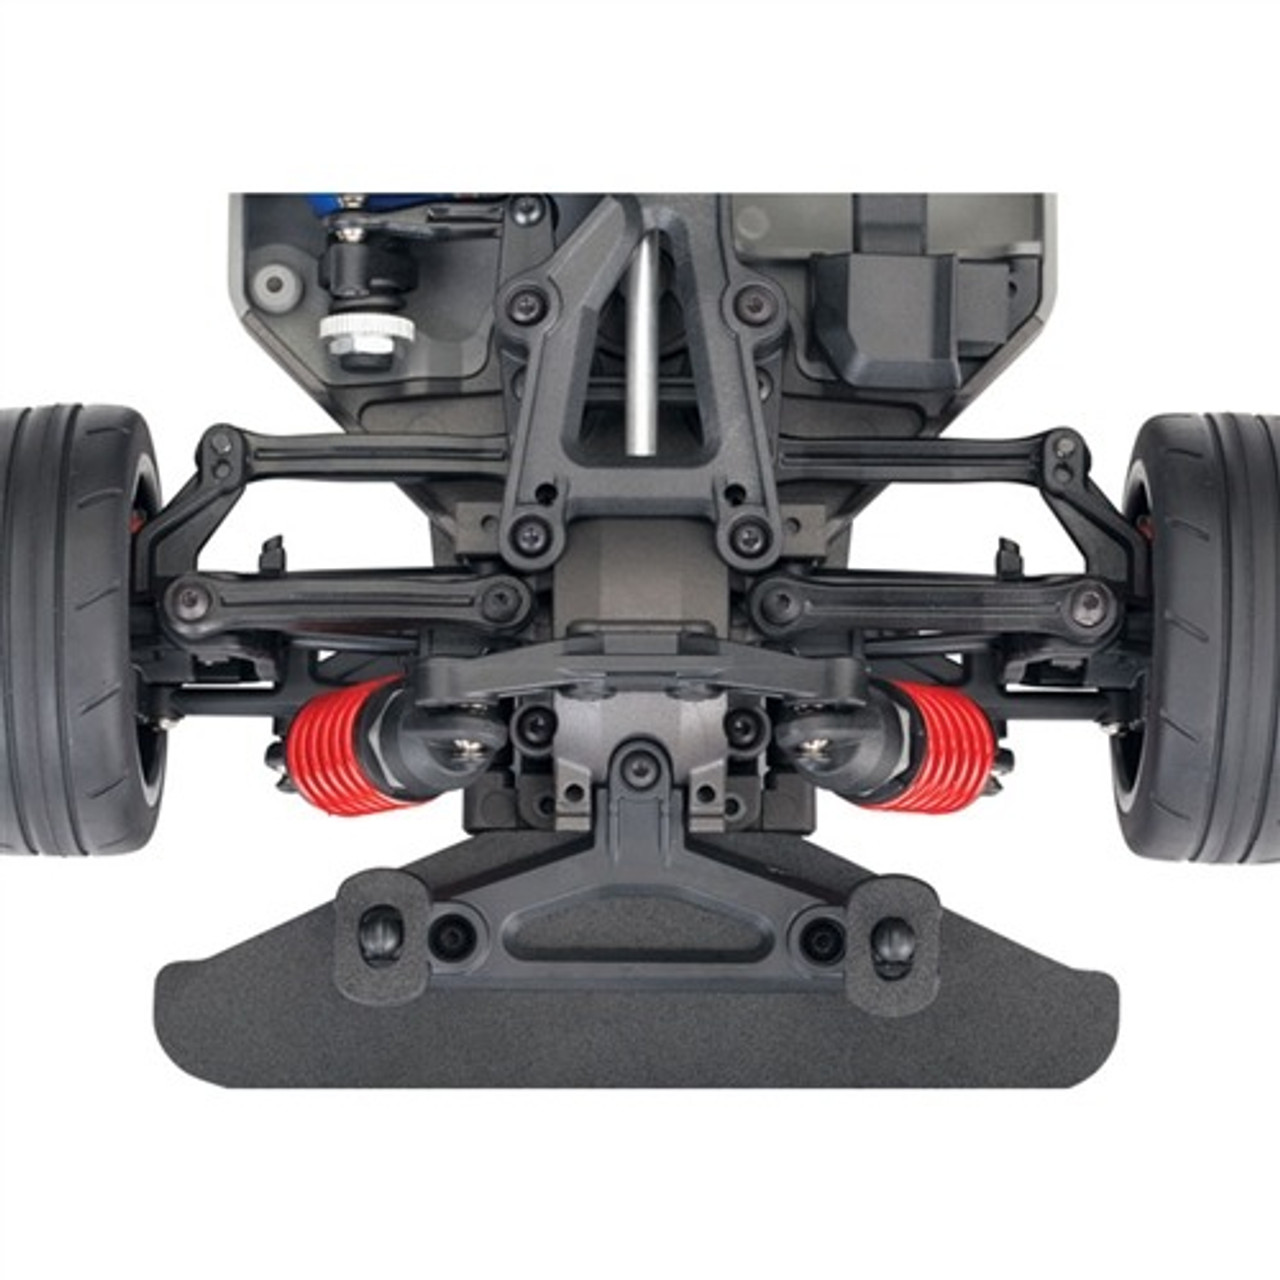 12 Turn Motor 4-Tec 2.0 1//10 Scale AWD Chassis with TQ 2.4GHz Radio 30+MPH